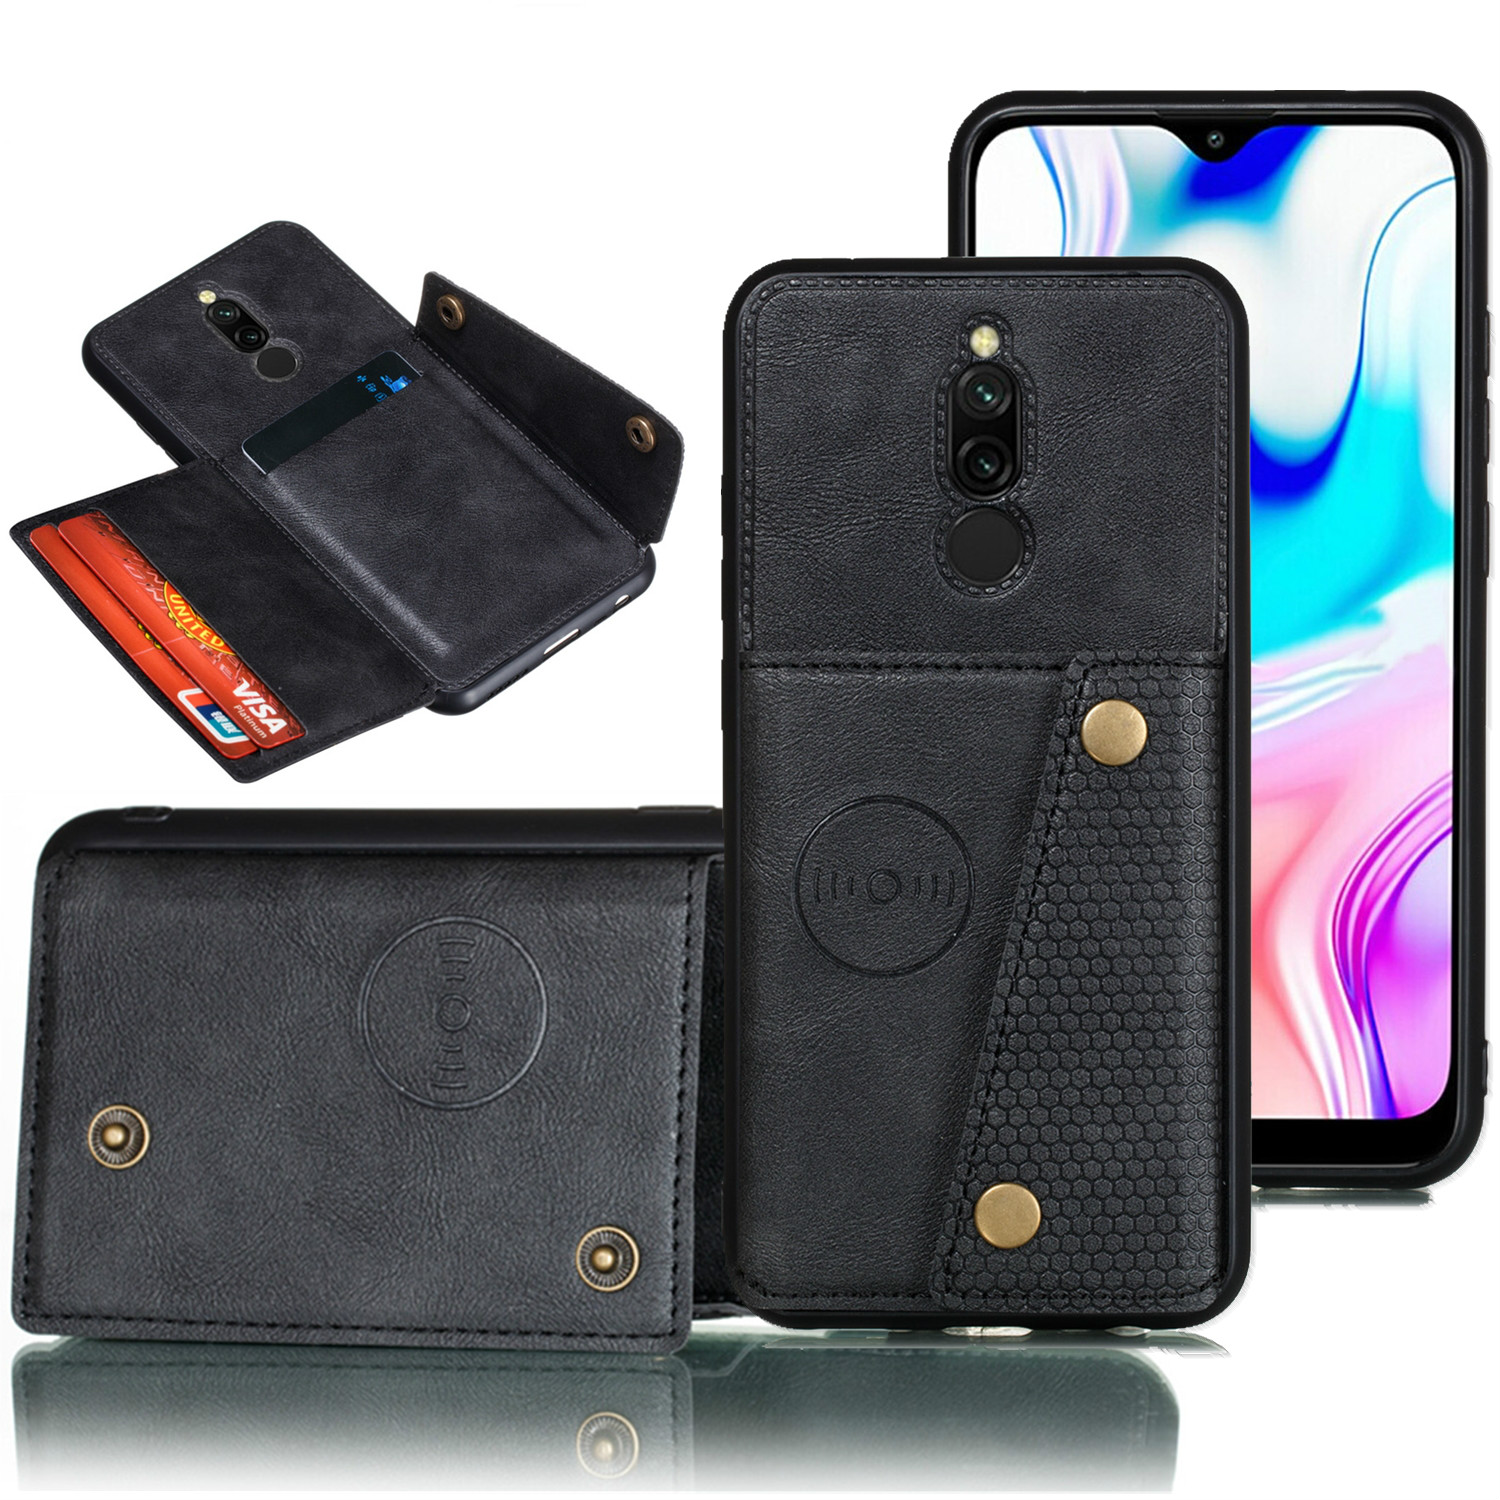 Case for <font><b>Redmi</b></font> 8 8a <font><b>Note</b></font> 8 <font><b>7</b></font> Mi 9t <font><b>Pro</b></font> Card Wallet Cover for <font><b>Xiaomi</b></font> Mi 9t <font><b>Redmi</b></font> K20 K30 7a <font><b>Note</b></font> 8T PU Leather Magnetic Wallet image